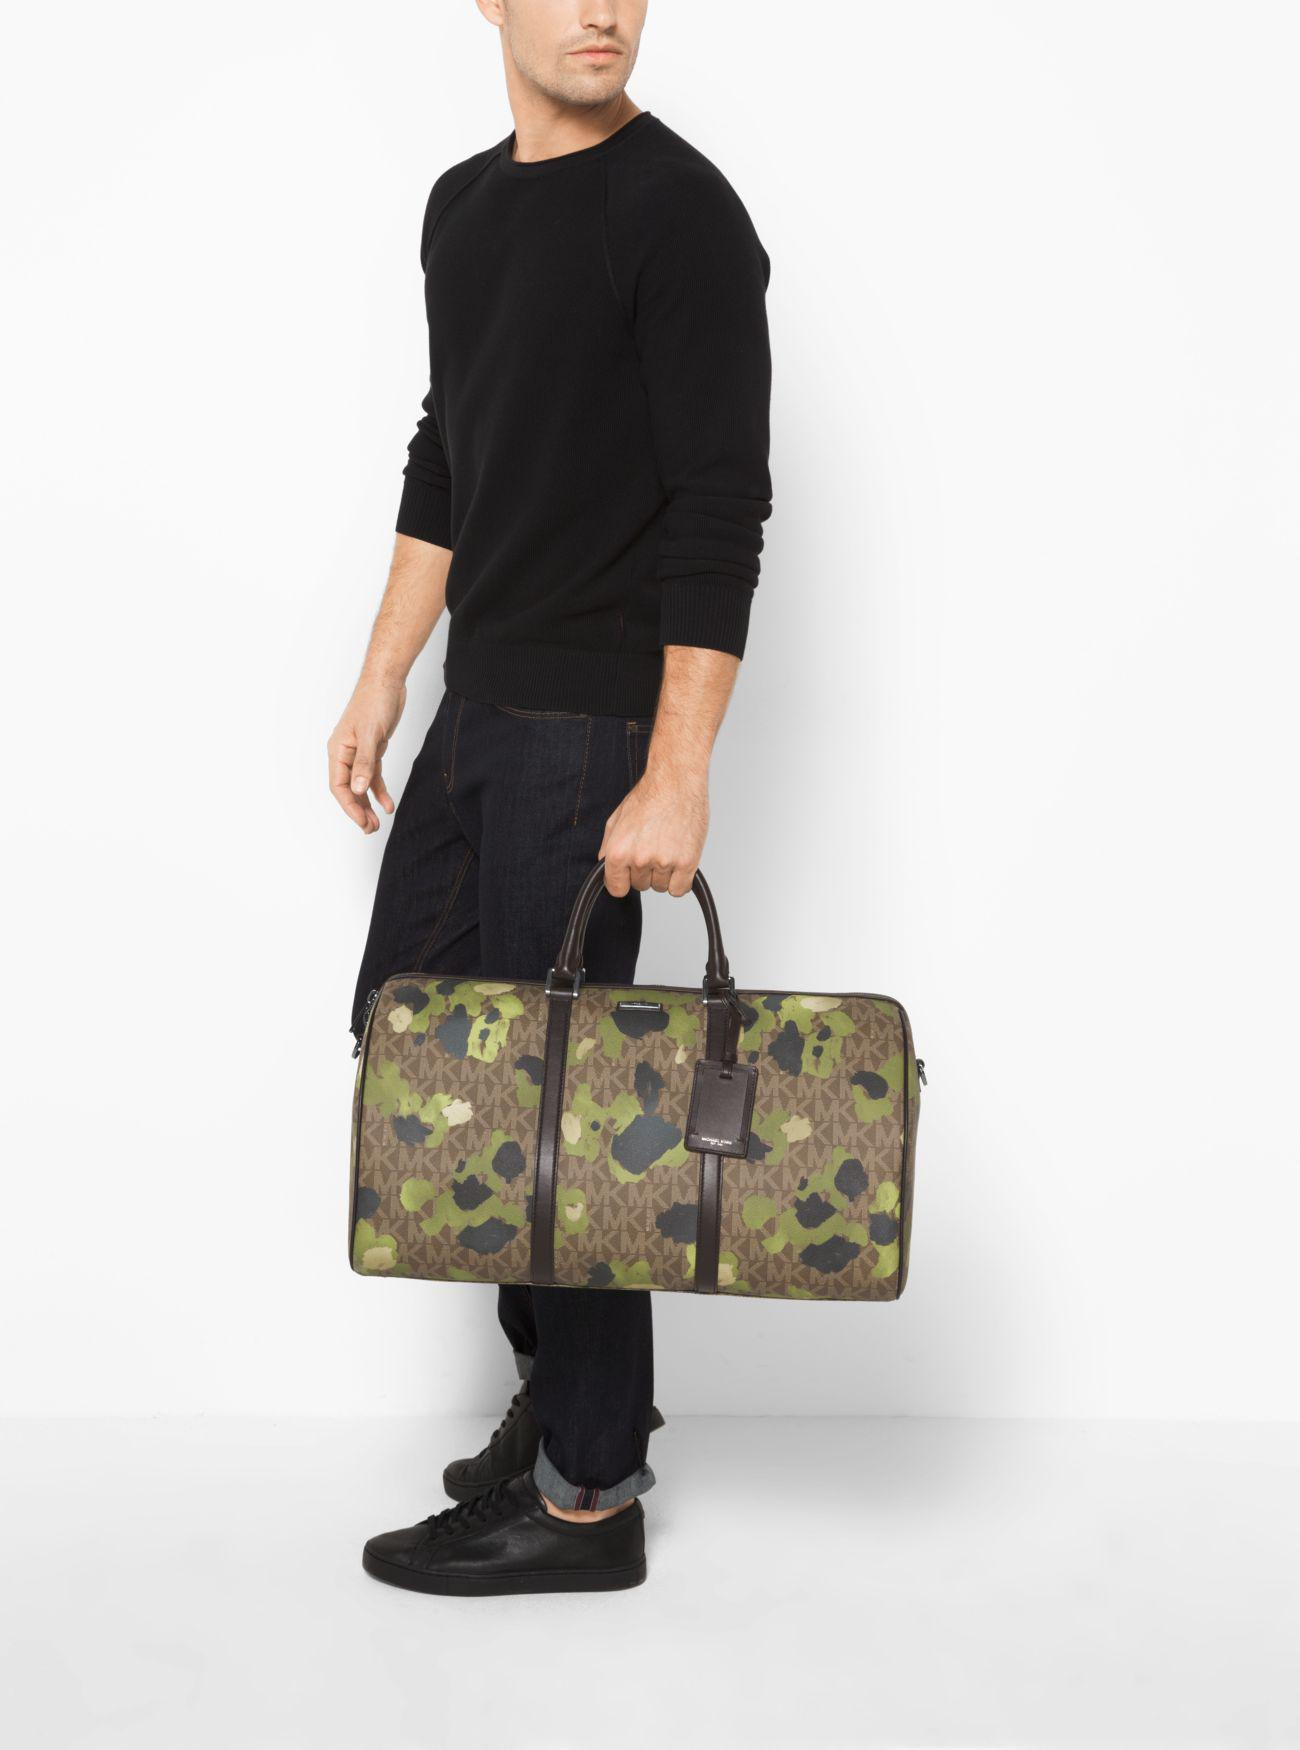 d377dee1609a Michael Kors Jet Set Painterly Camo Large Duffel Bag for Men - Lyst